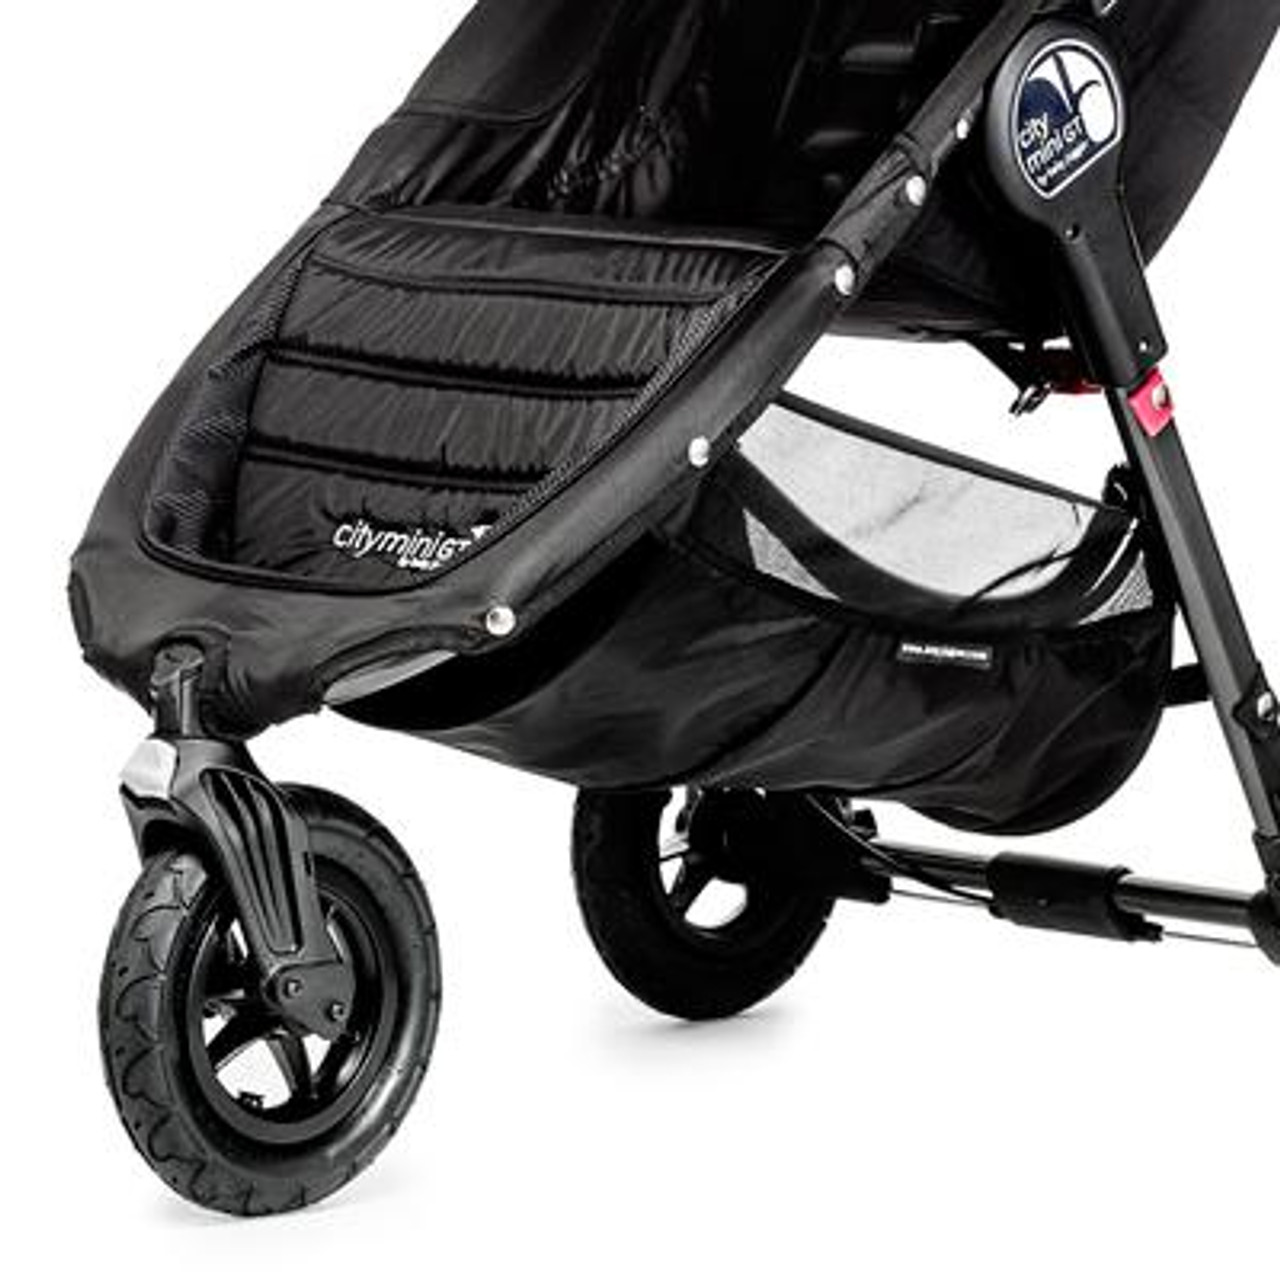 Baby Jogger City Mini / Mini GT Under Basket at Baby Barn Discounts Replacement part for the Baby Jogger City Mini/ Mini GT pram.